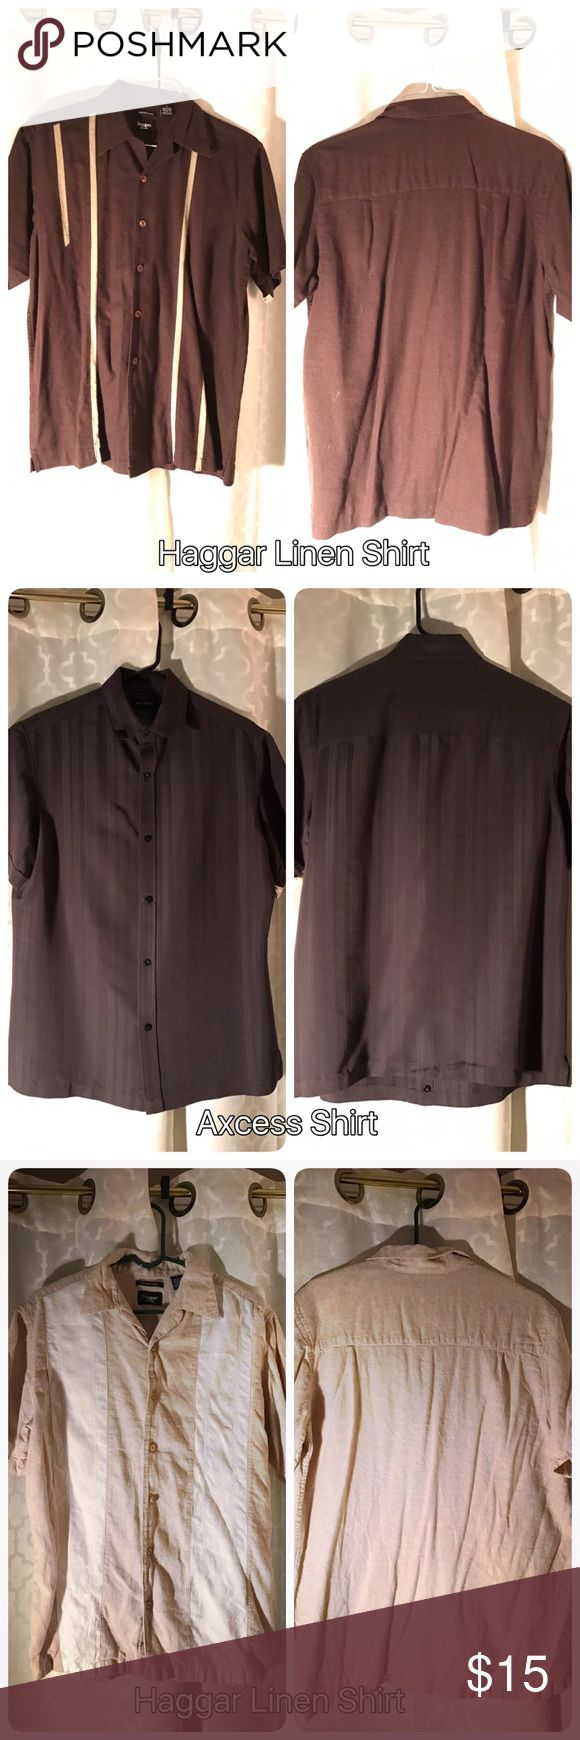 Charlie Sheen-esque shirts! 3 Shirt bundle 3 Shirt bundle. These fun shirts all remind me of Charlie Sheen! My fiancé wore these when we went to the Bahamas. All lightly worn and size medium. All brown tones. Axcess Shirt- 65% rayon 35% polyester. Haggar Shirts- 55% Linen 45% rayon Haggar Shirts Casual Button Down Shirts